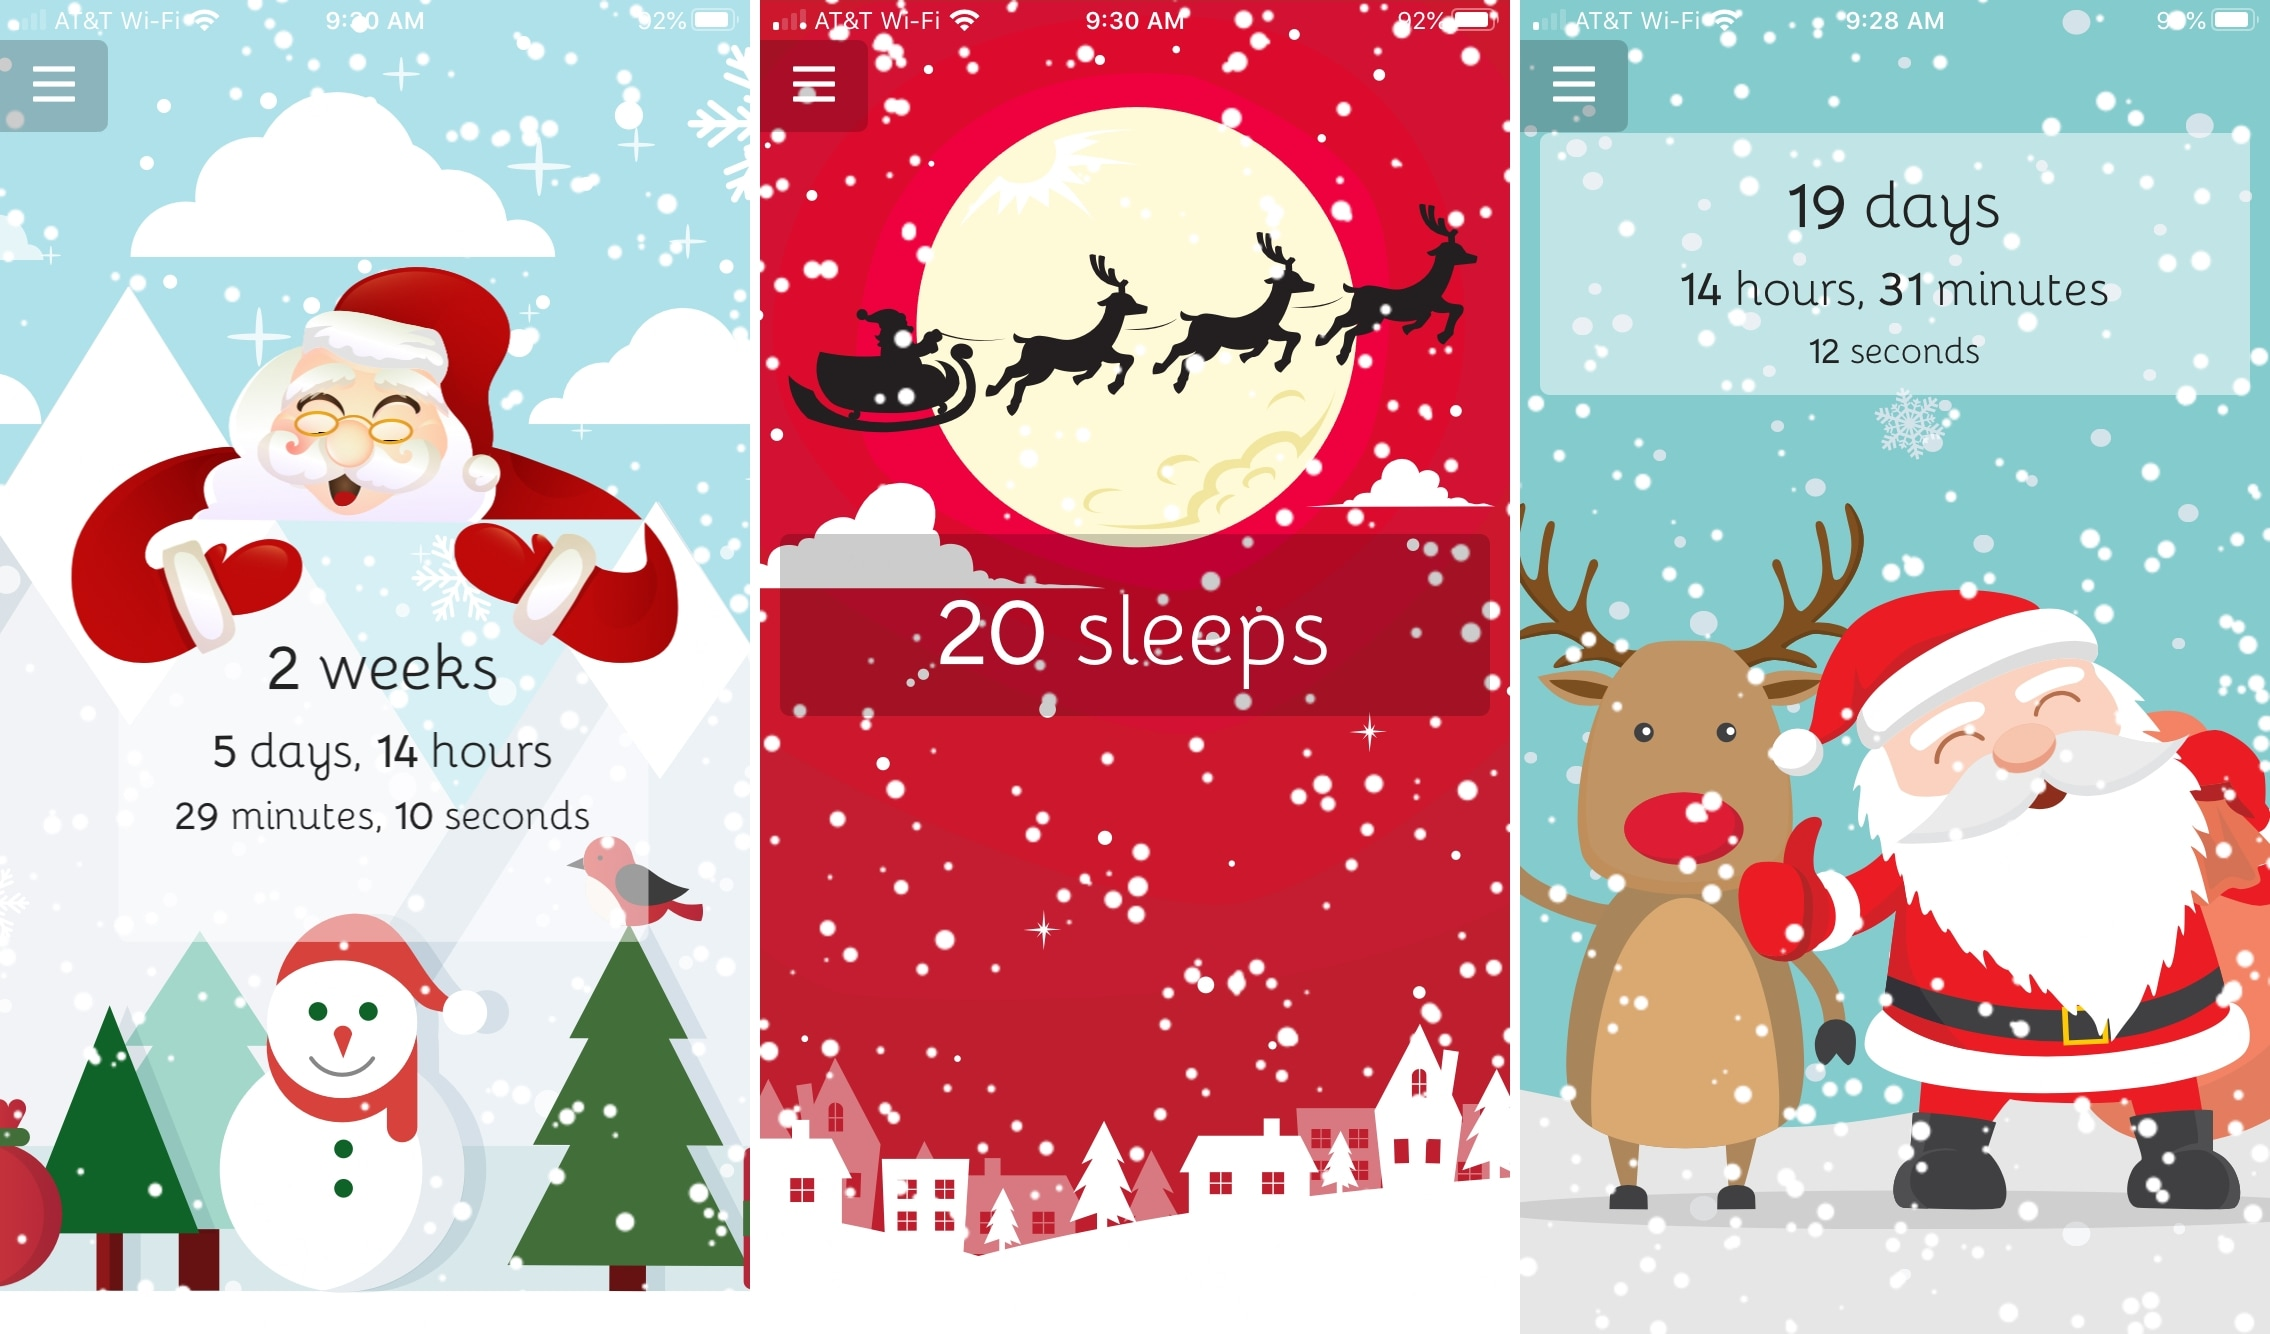 The Best Iphone Christmas Apps For Celebrating The Holiday